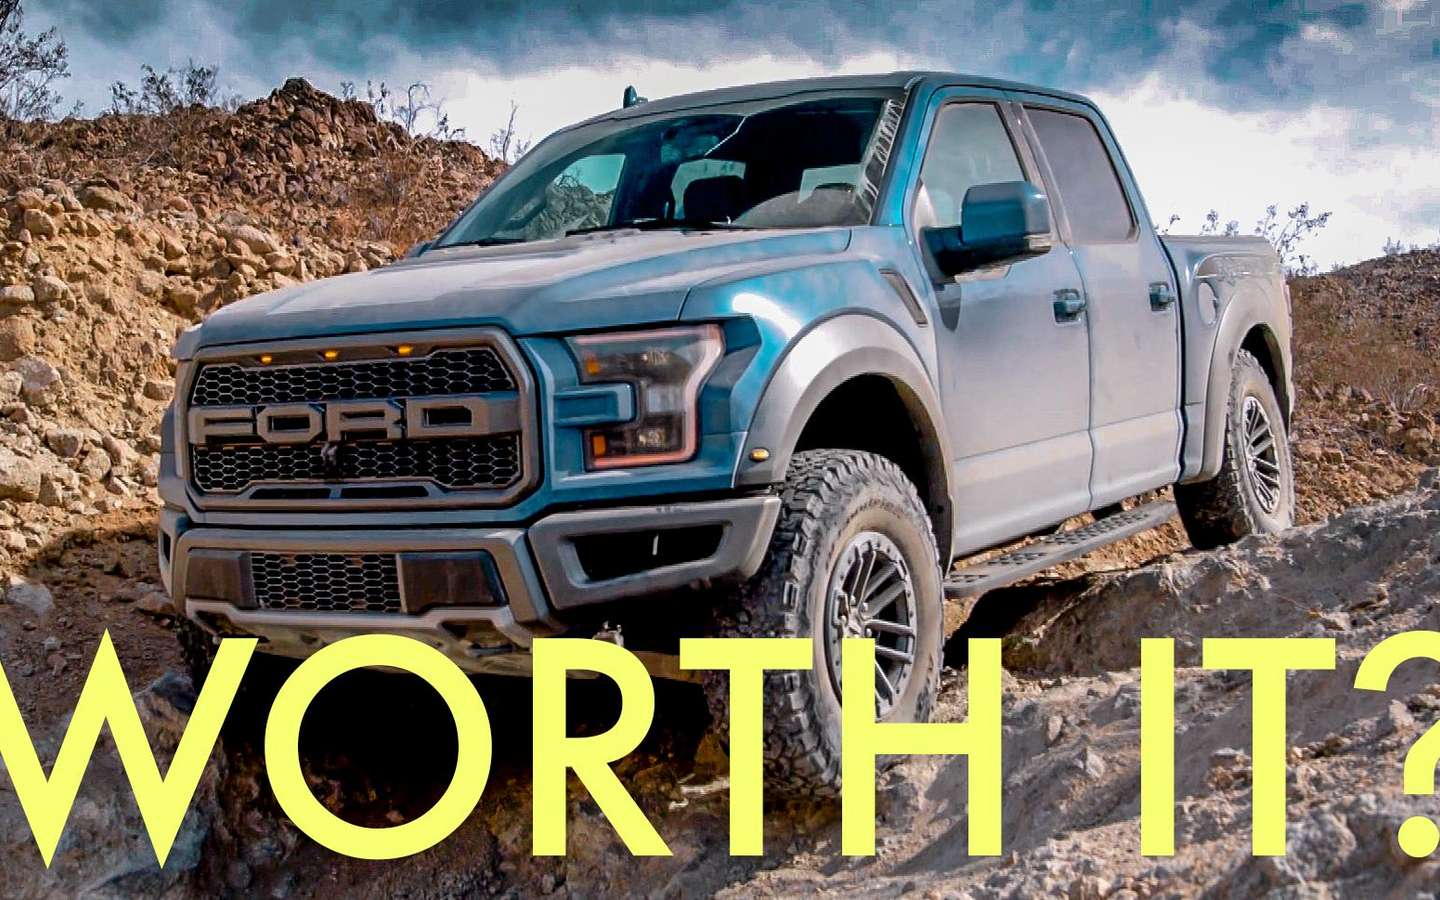 Roush Performance, 5.11 Tactical team up on a custom Ford F-150 pickup